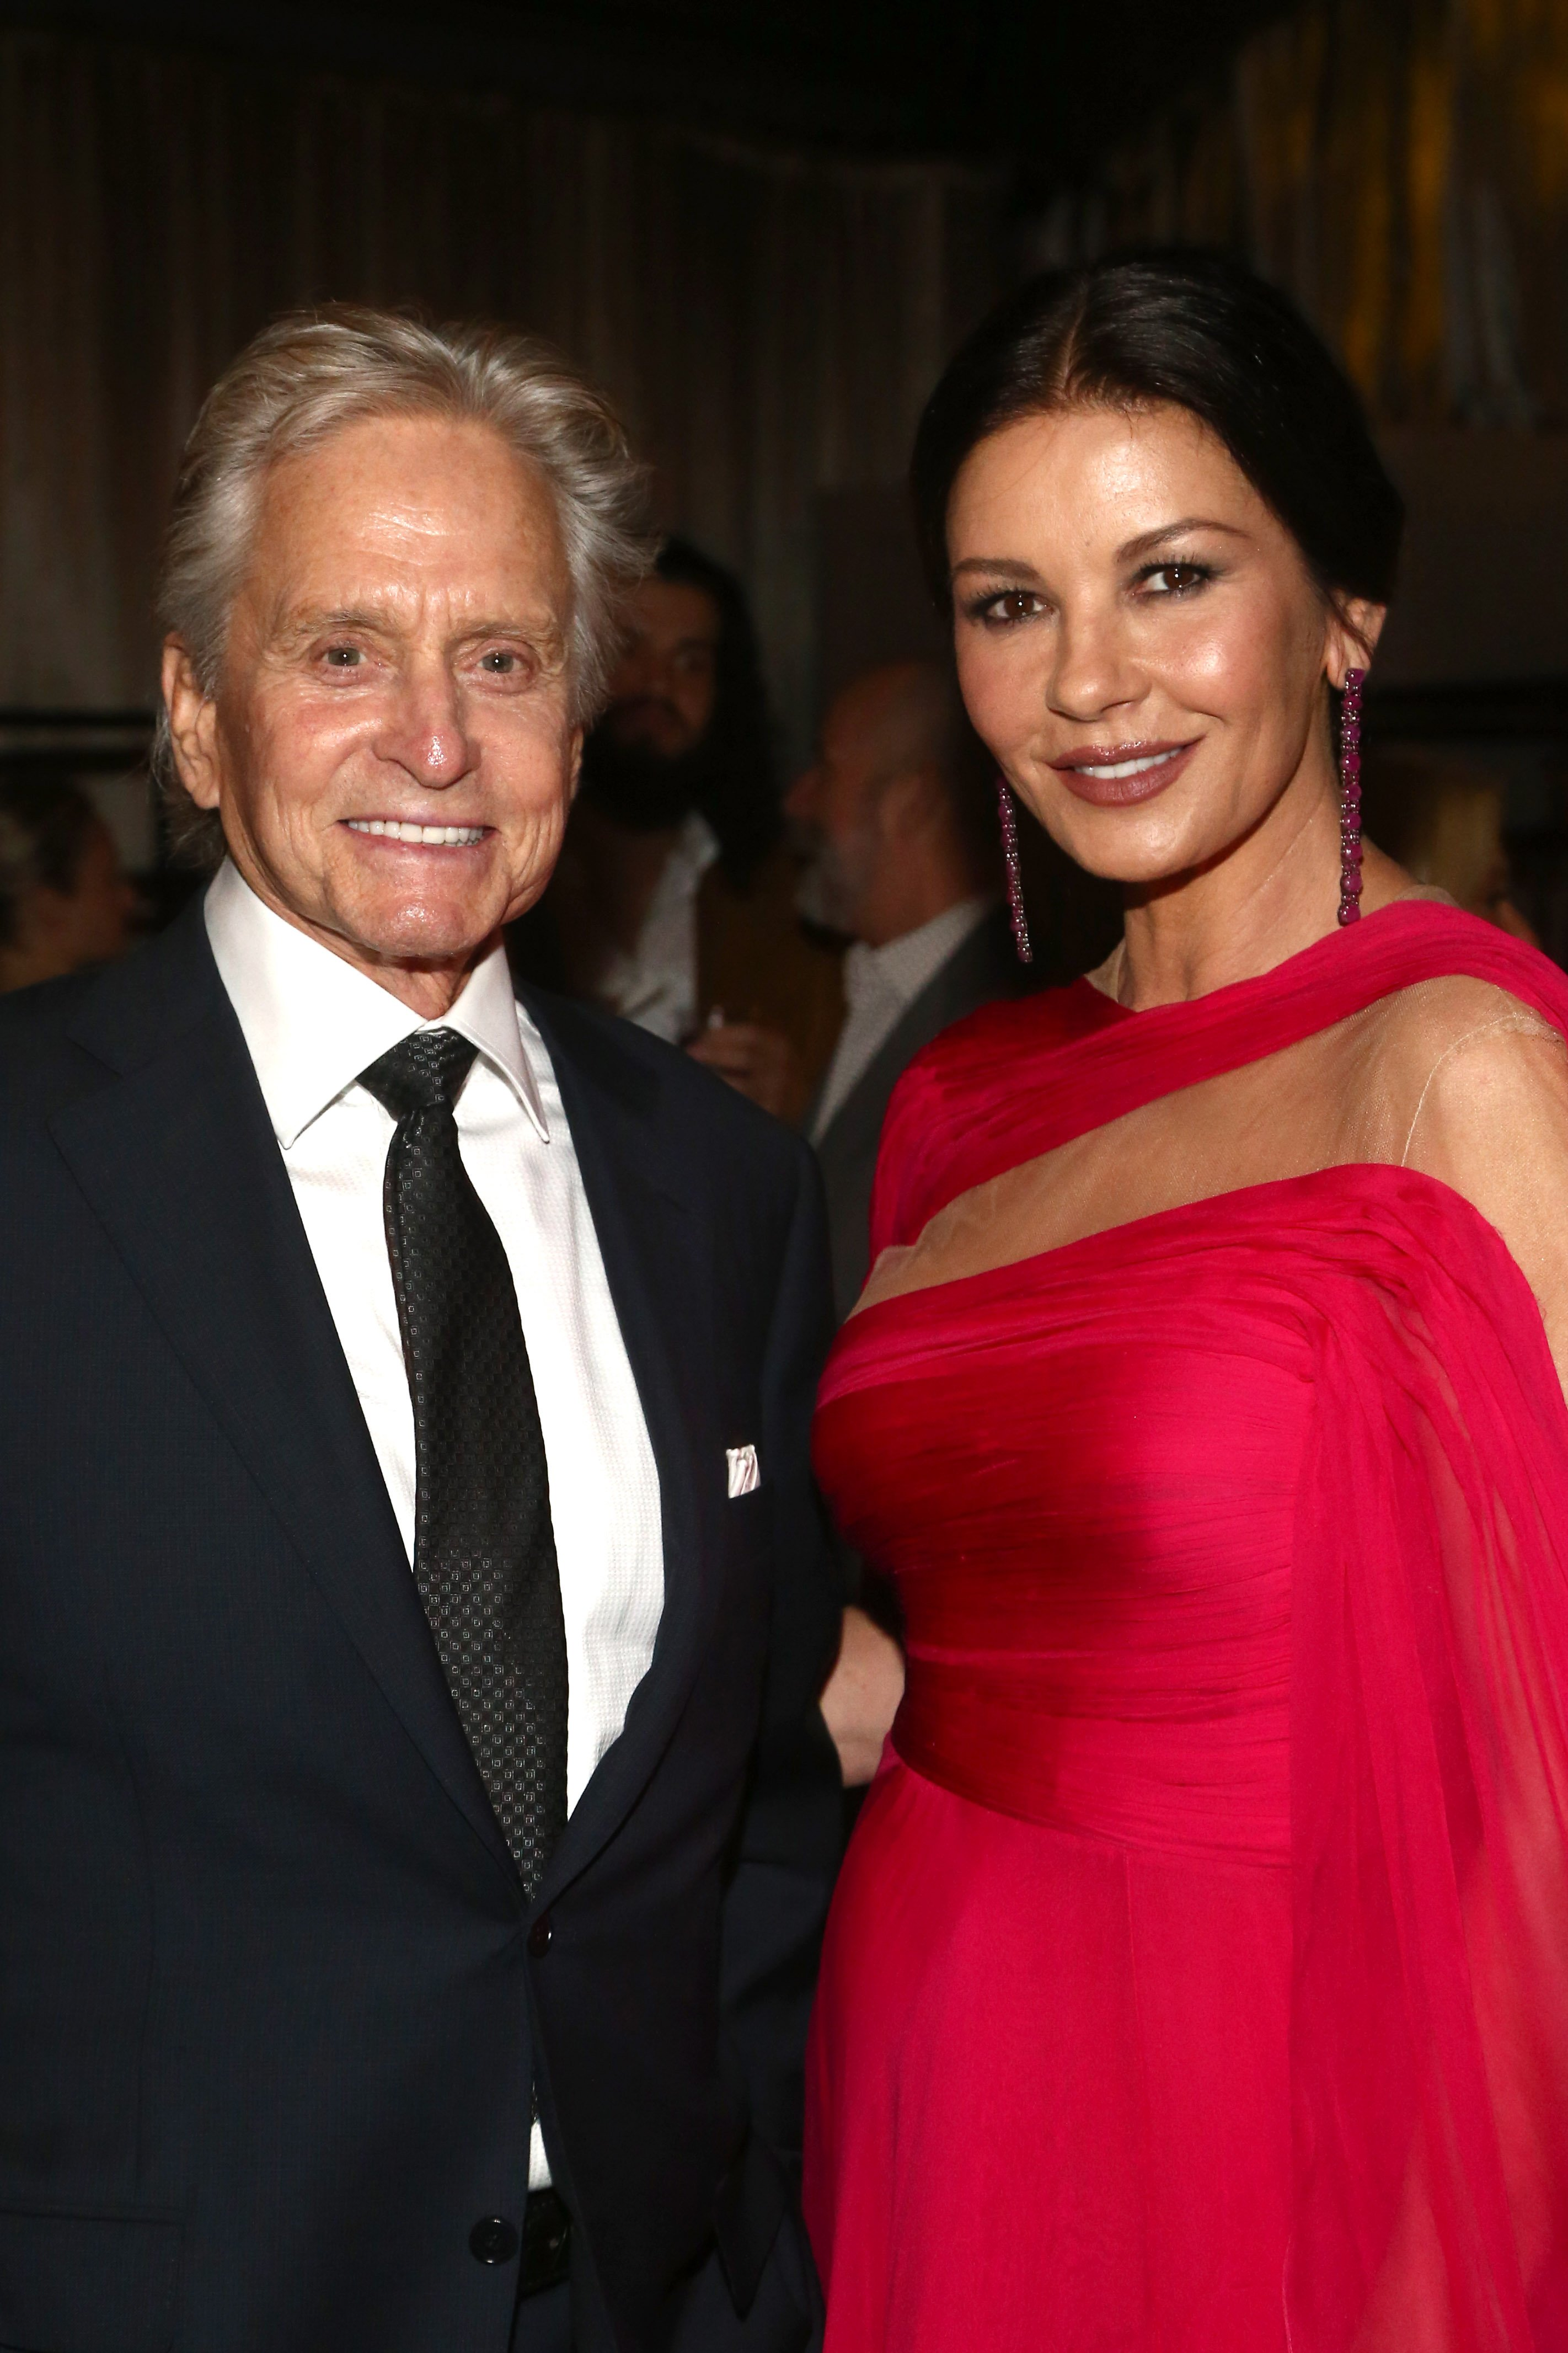 Michael Douglas and Catherine Zeta-Jones attend the Netflix's 71st Emmy Awards After Party on September 22, 2019, in Hollywood, California. | Source: Getty Images.